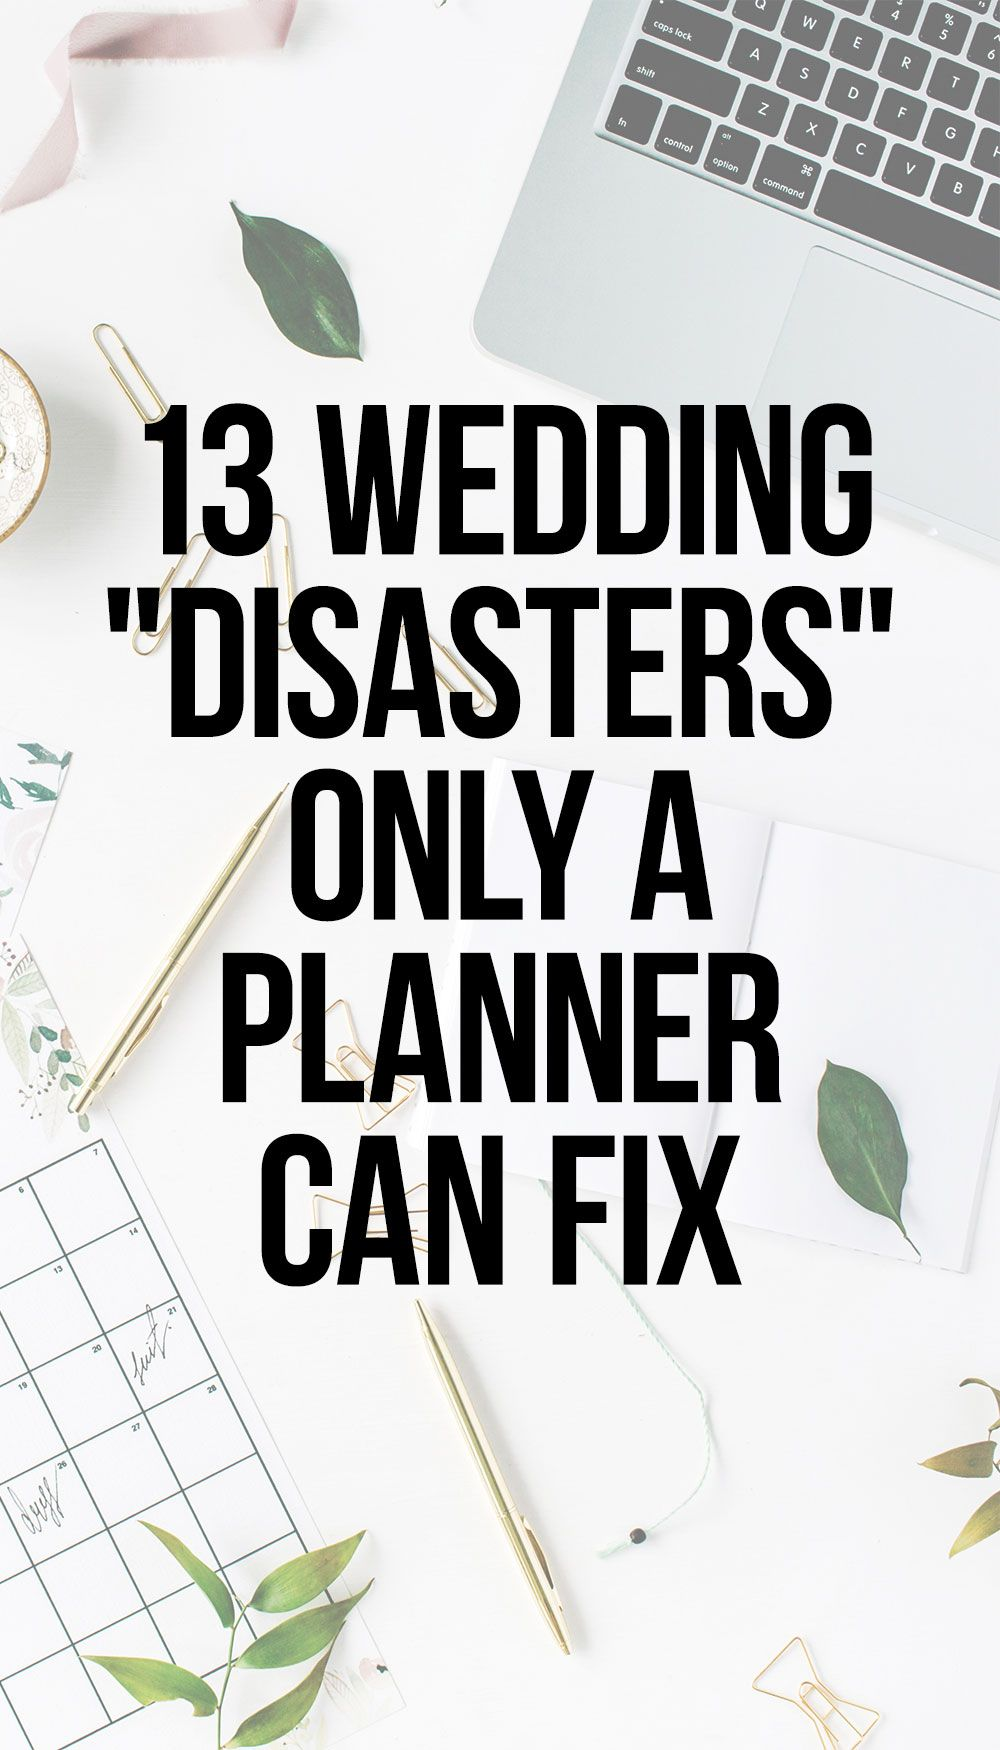 Get the inside scoop on what can go wrong at your wedding